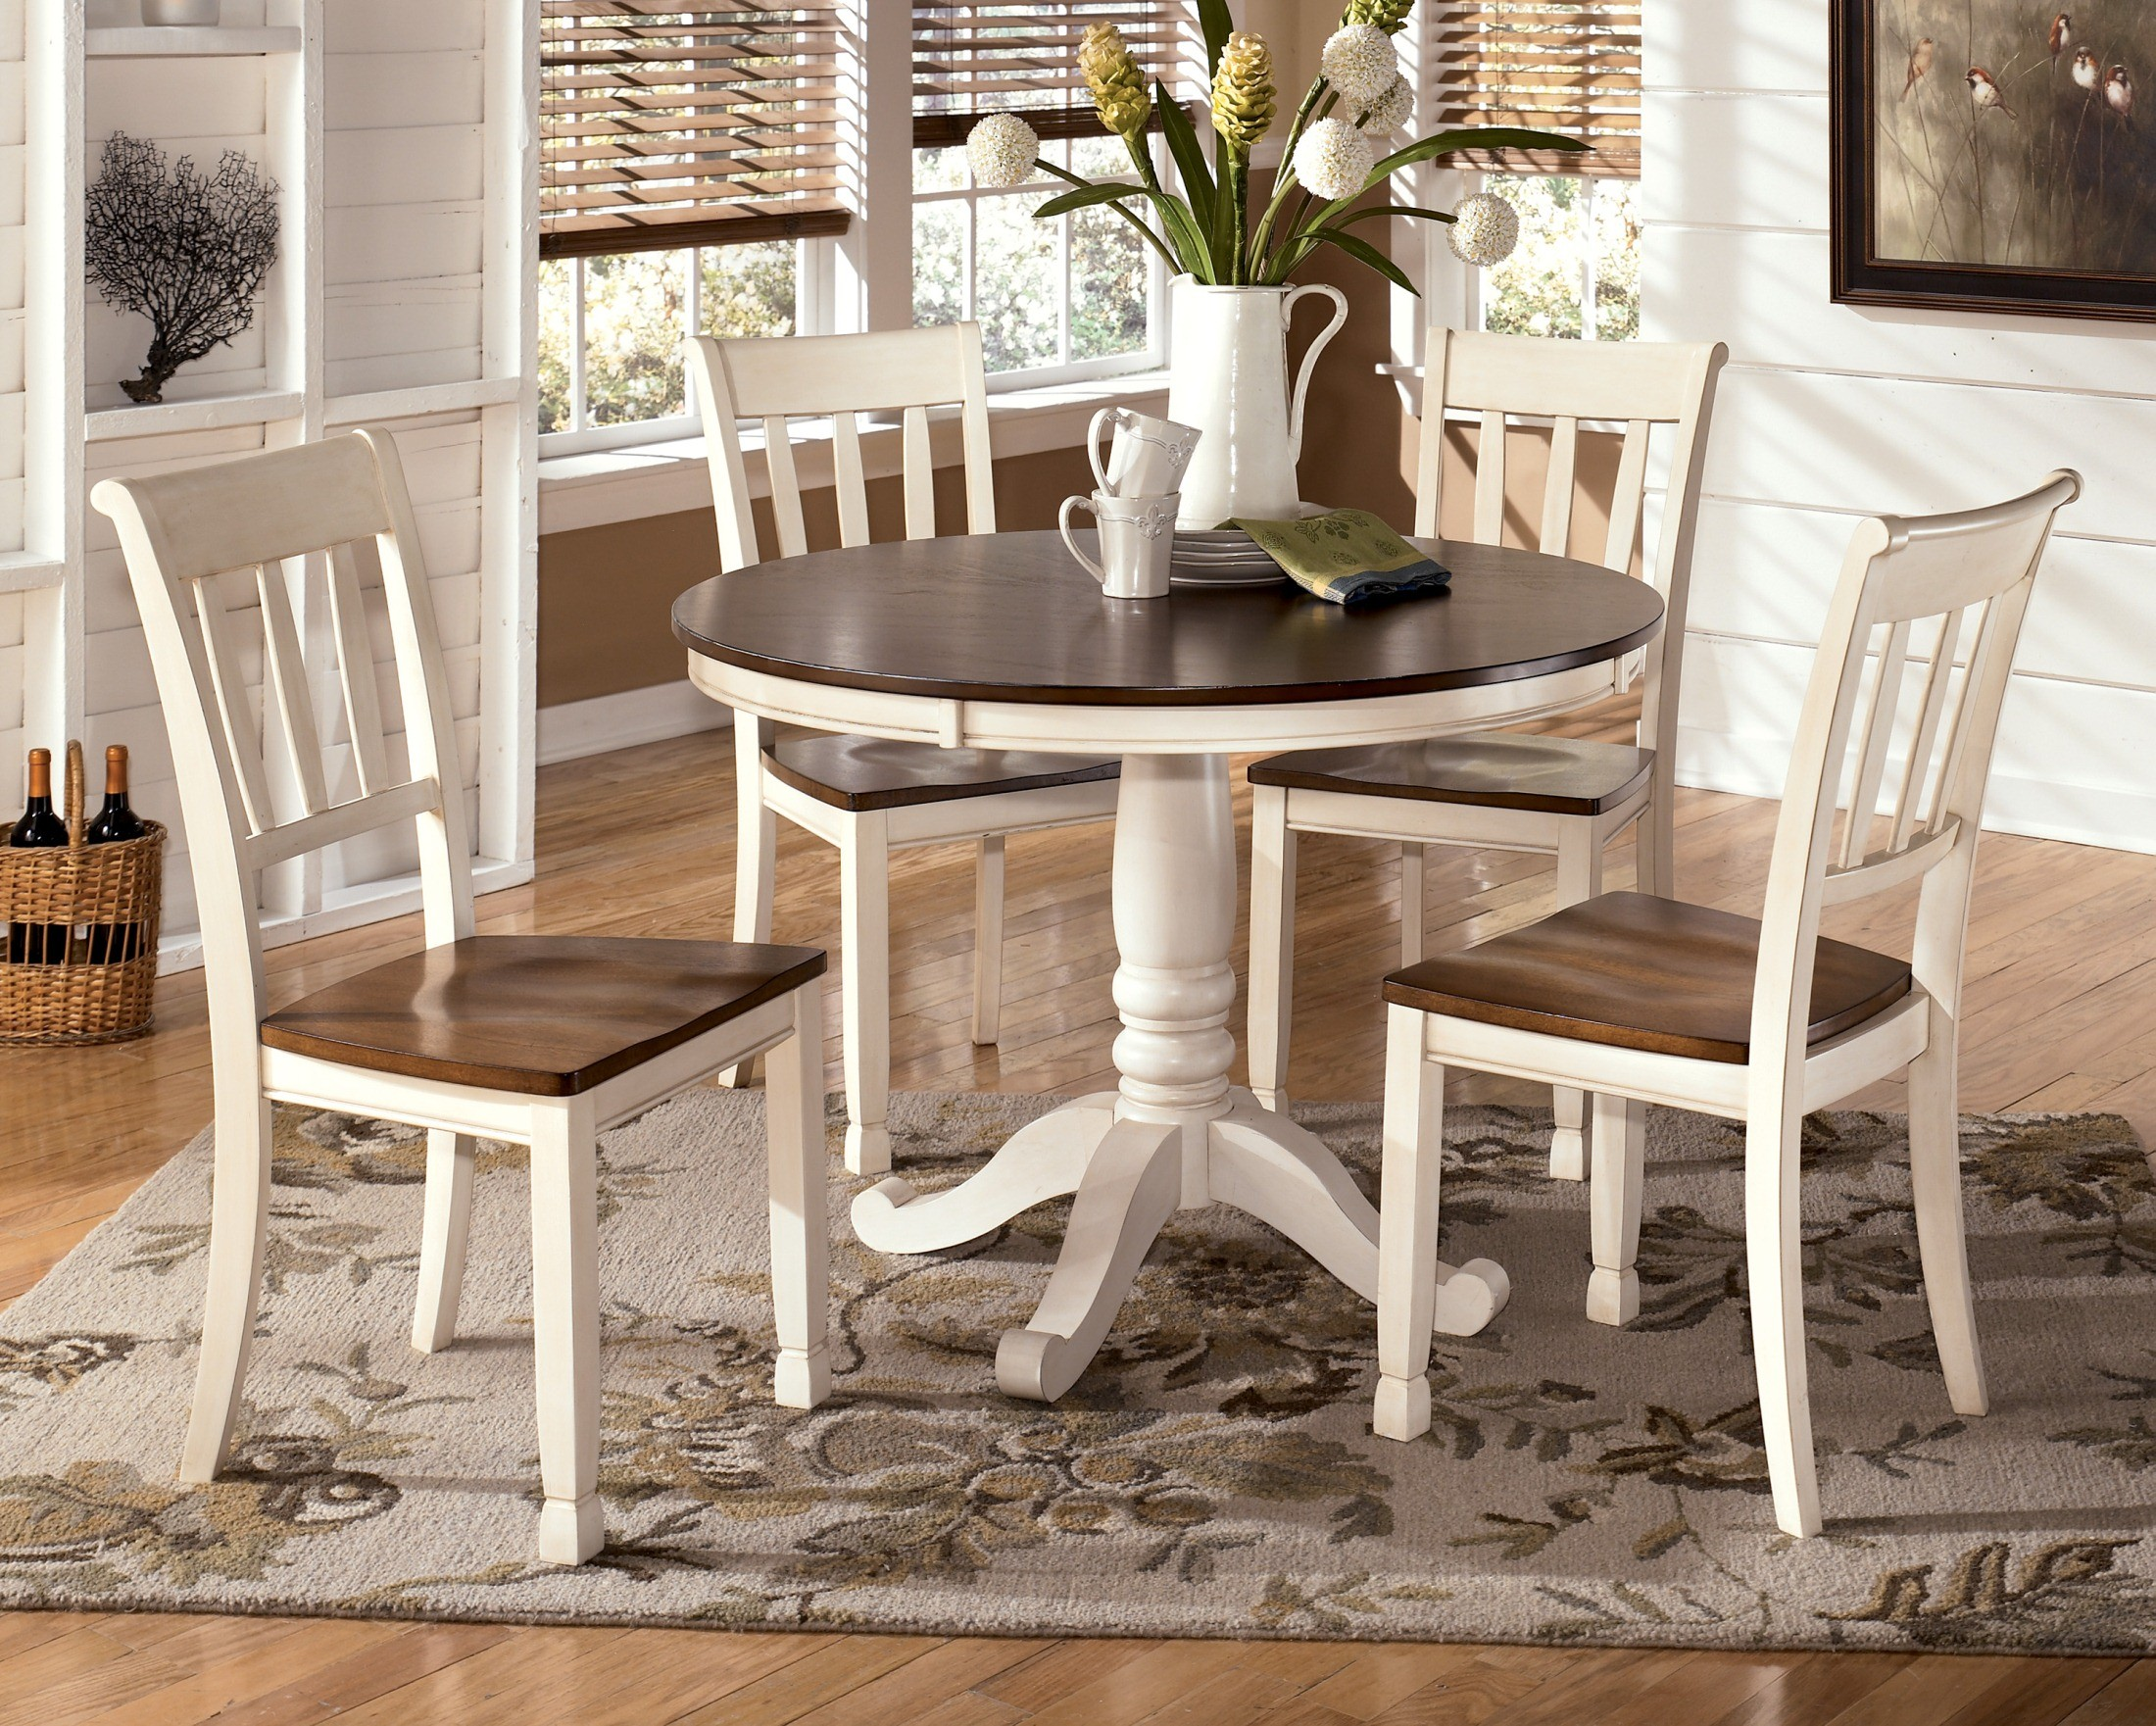 Whitesburg Round Dining Room Set From Ashley D583 15B 15T Coleman Furniture